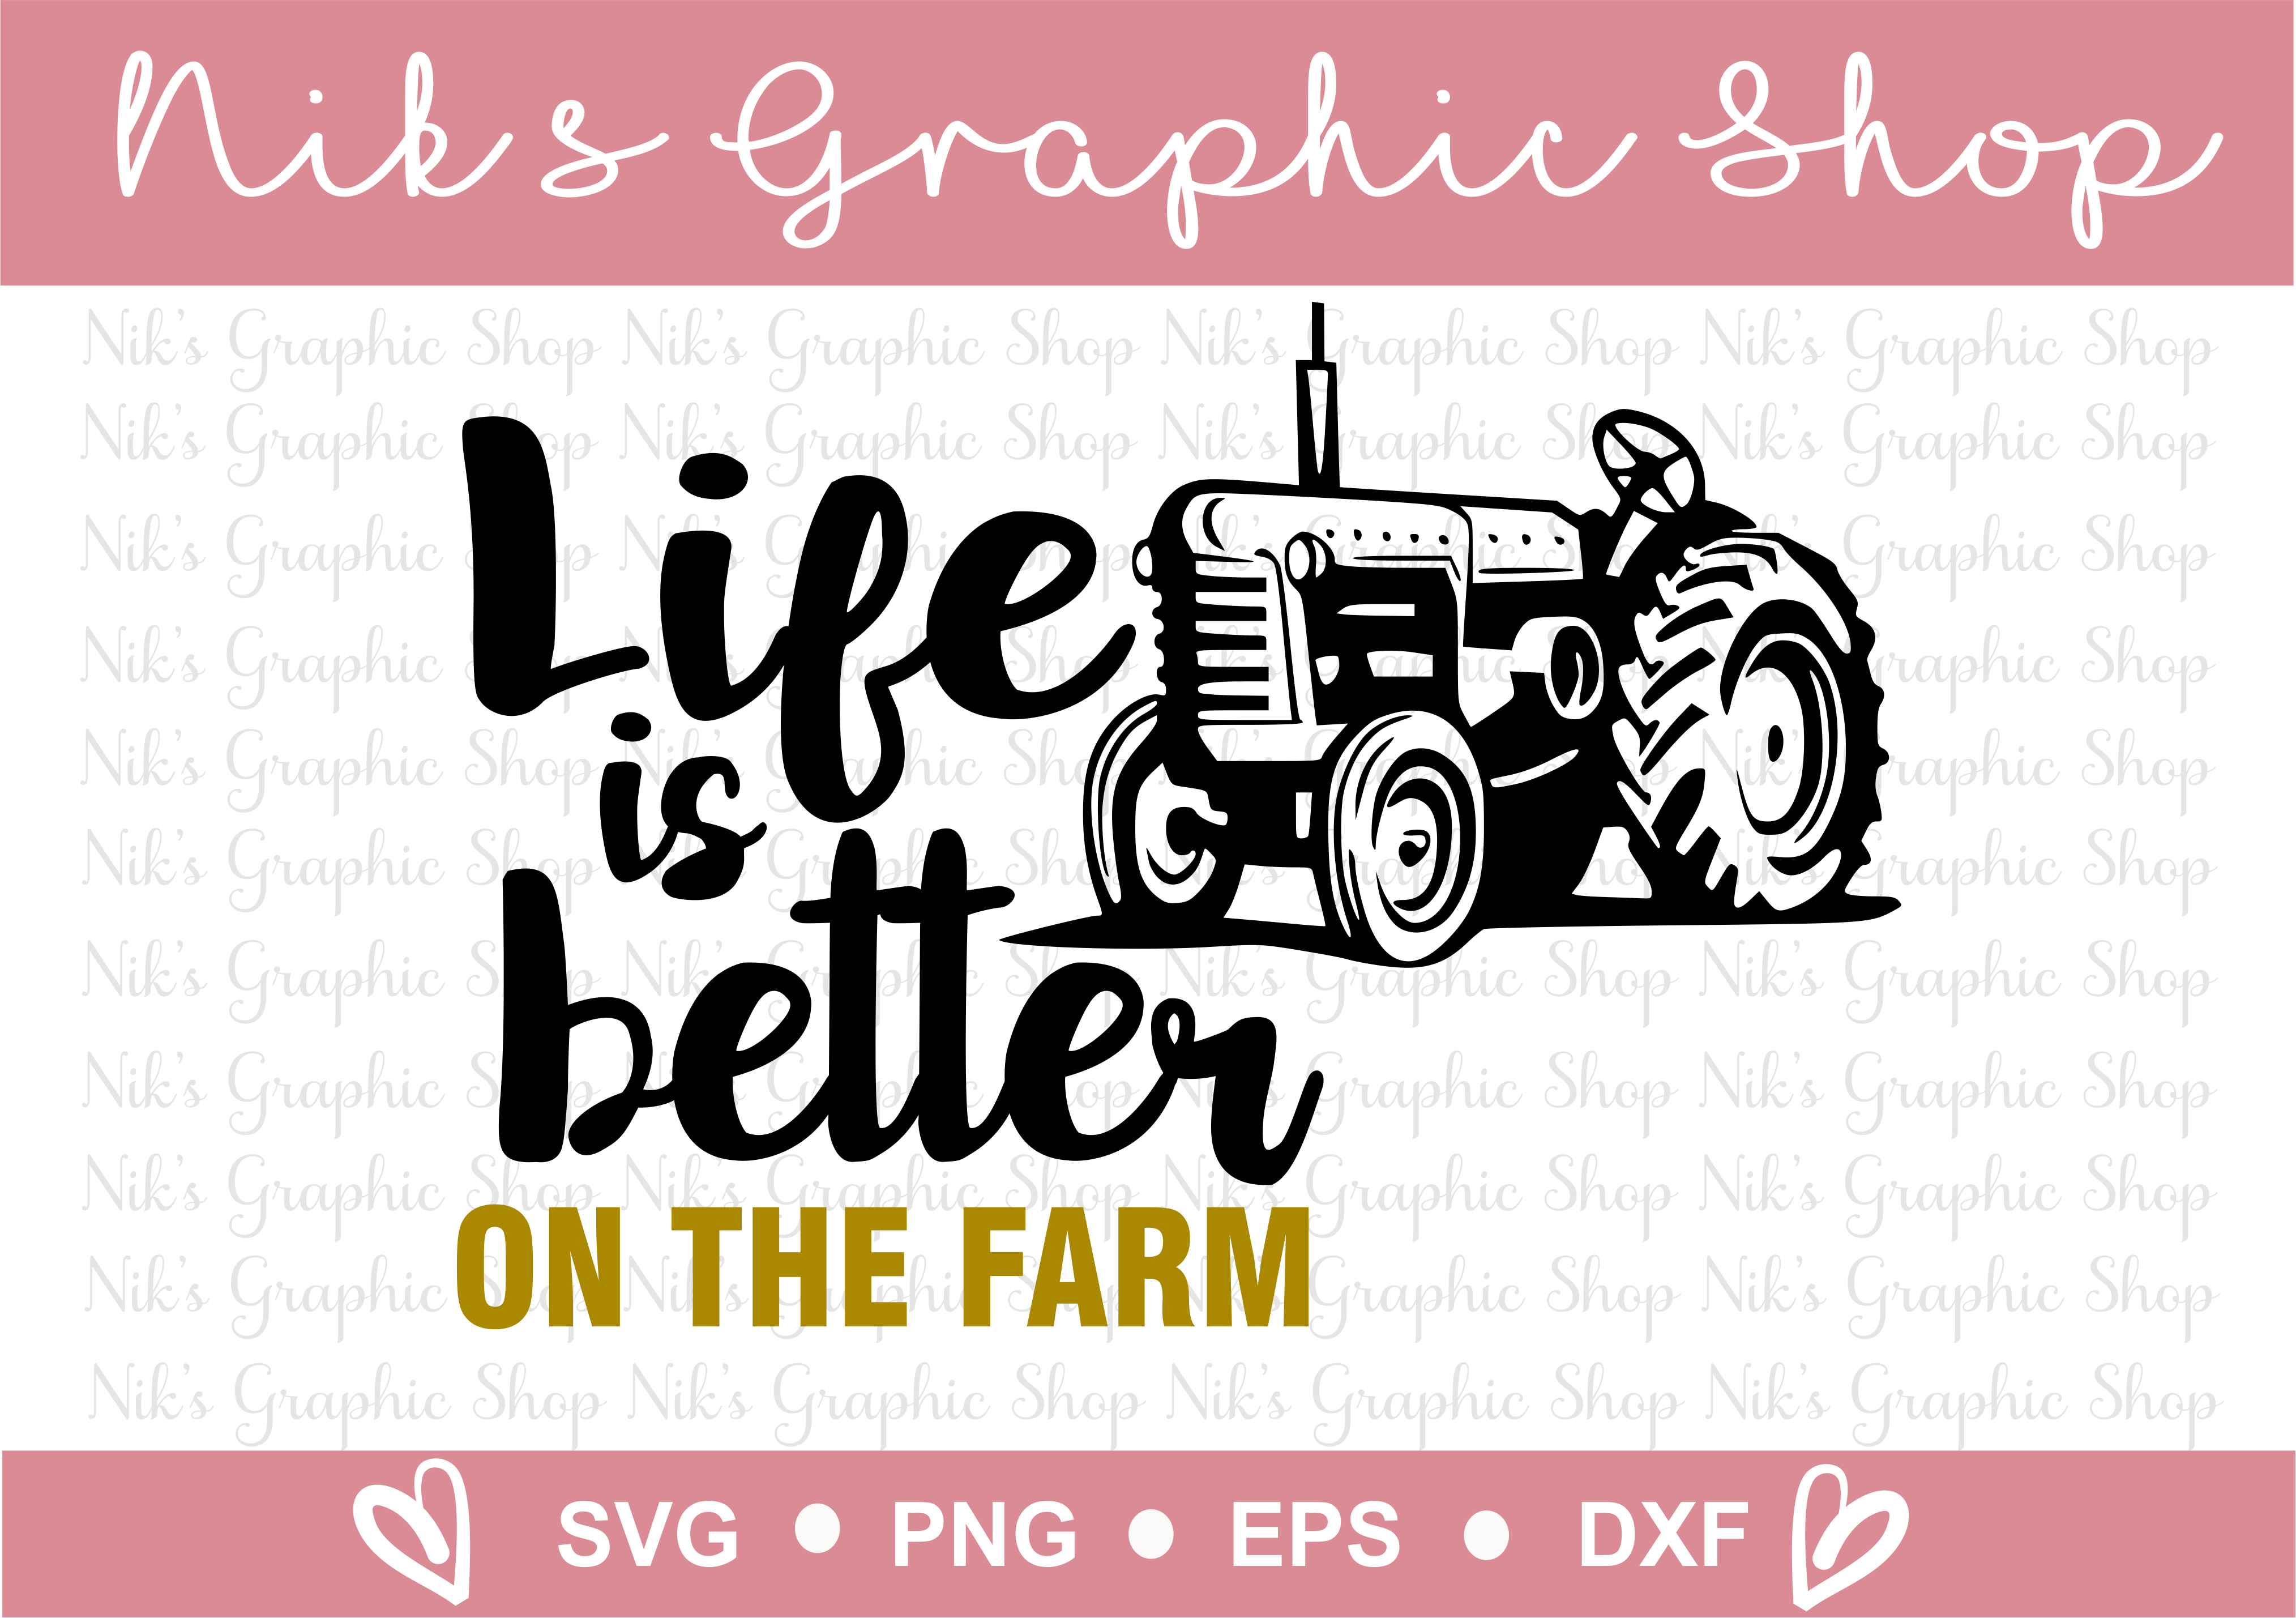 Farm Svgs, Farmers Svgs, Farmers Daughter Svg, Farm sweet example image 10